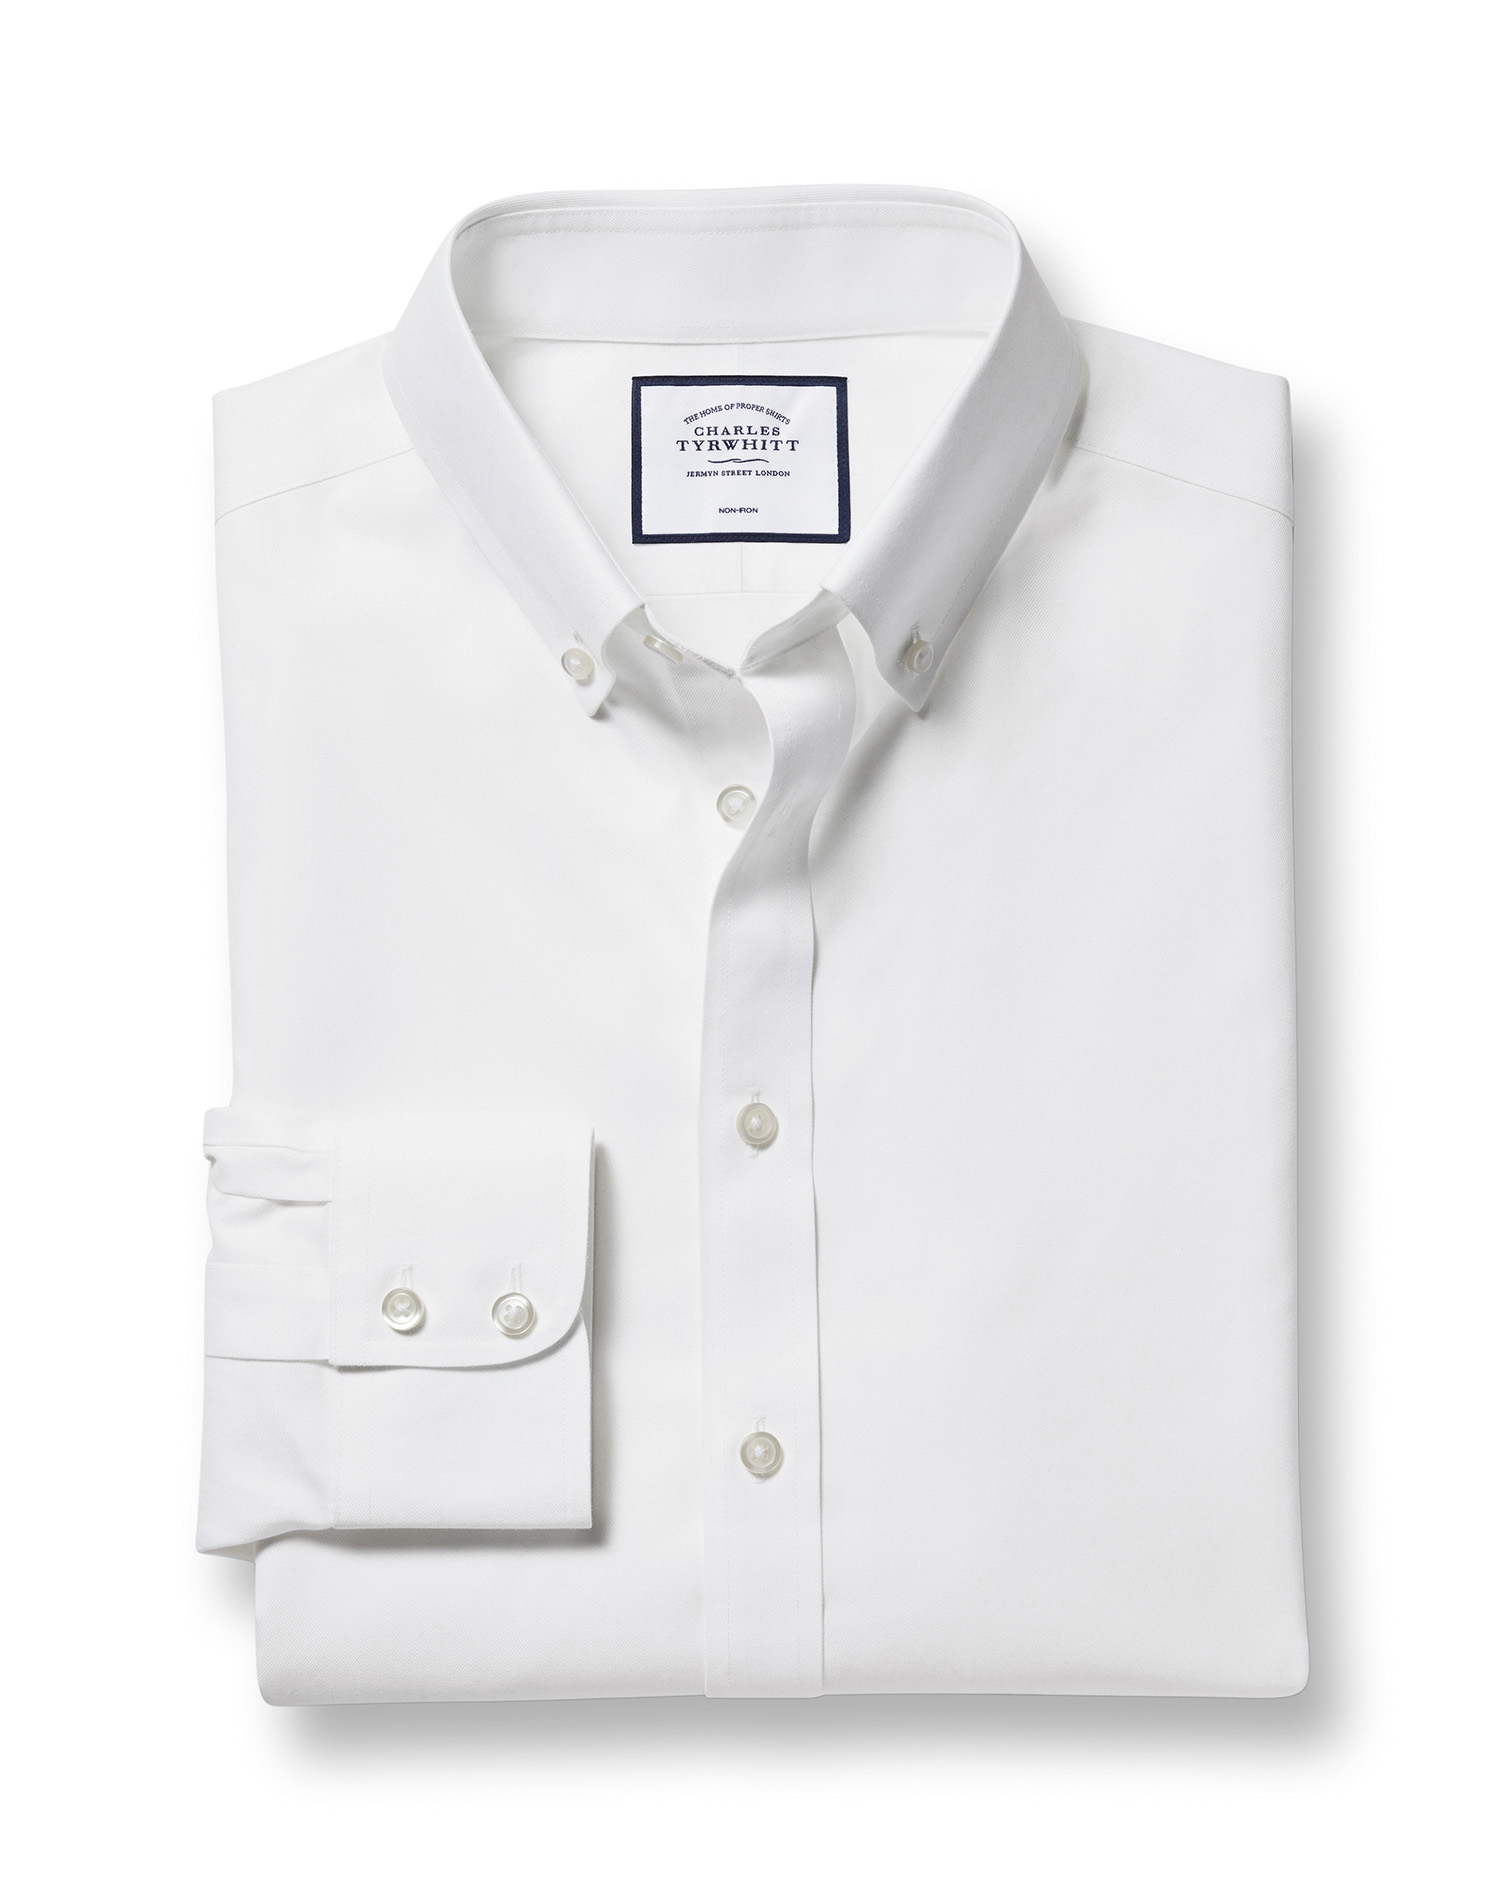 Classic Fit White Button-Down Non-Iron Twill Cotton Formal Shirt Single Cuff Size 15/34 by Charles T